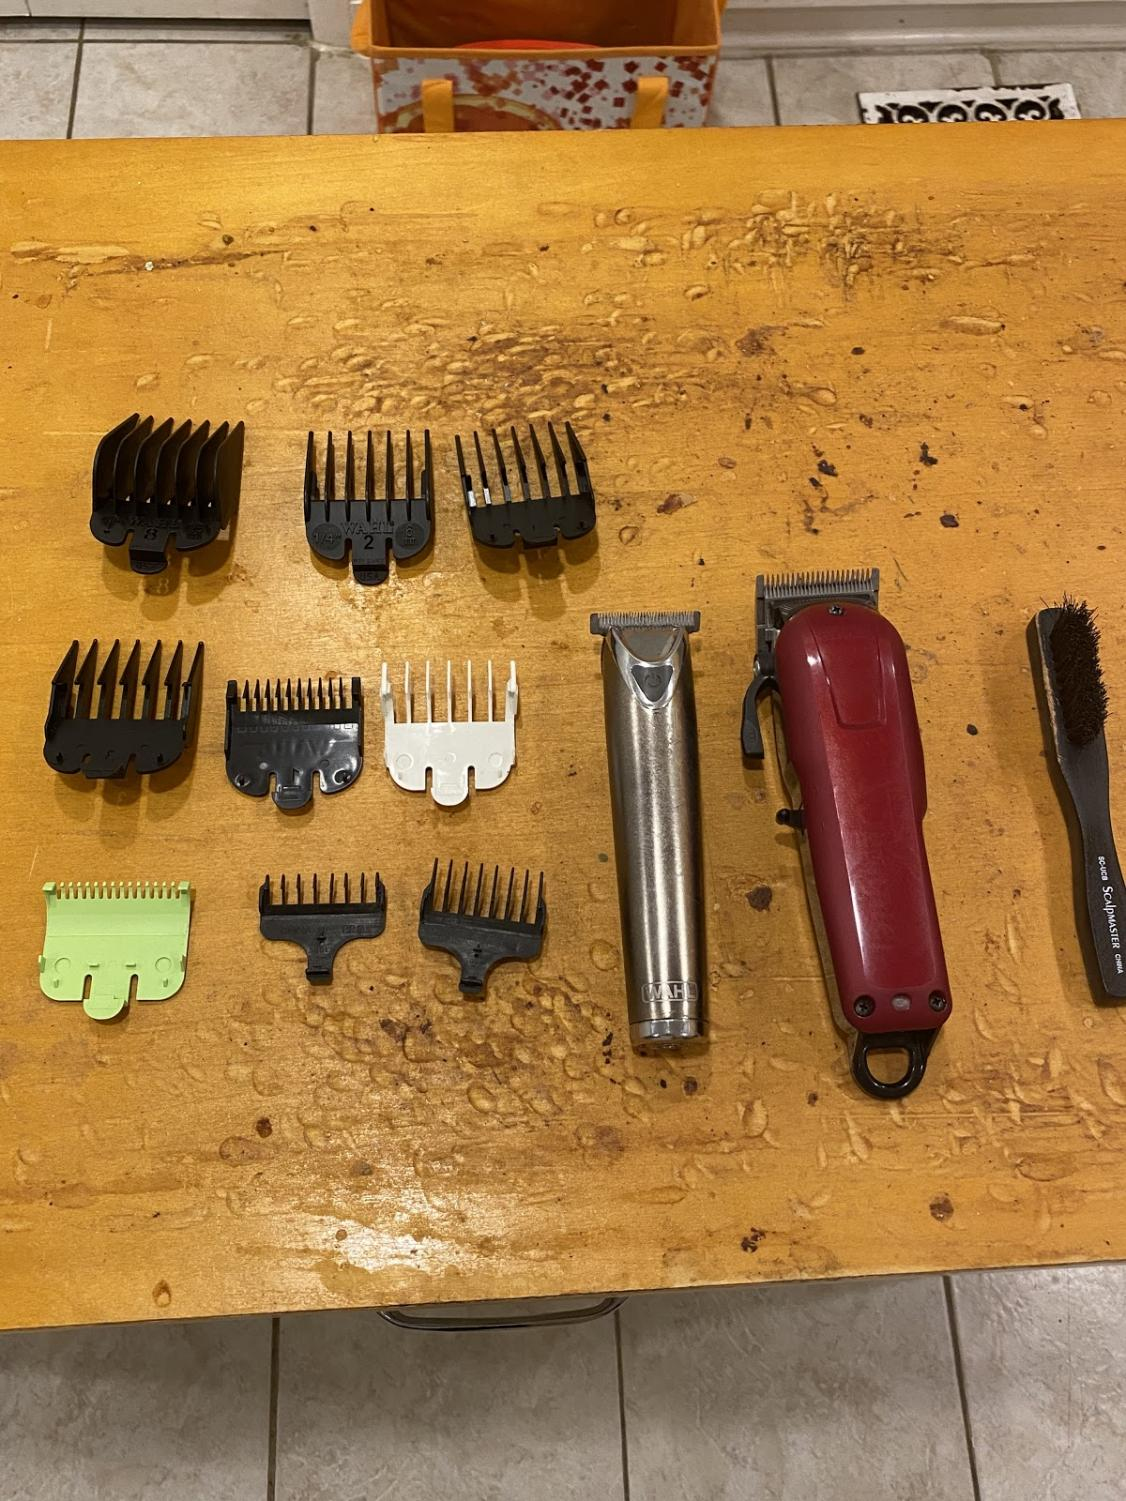 This is a photo of my dad's barber clippers and we are using them to cut my hair during this pandemic because I usually go to a barber shop.